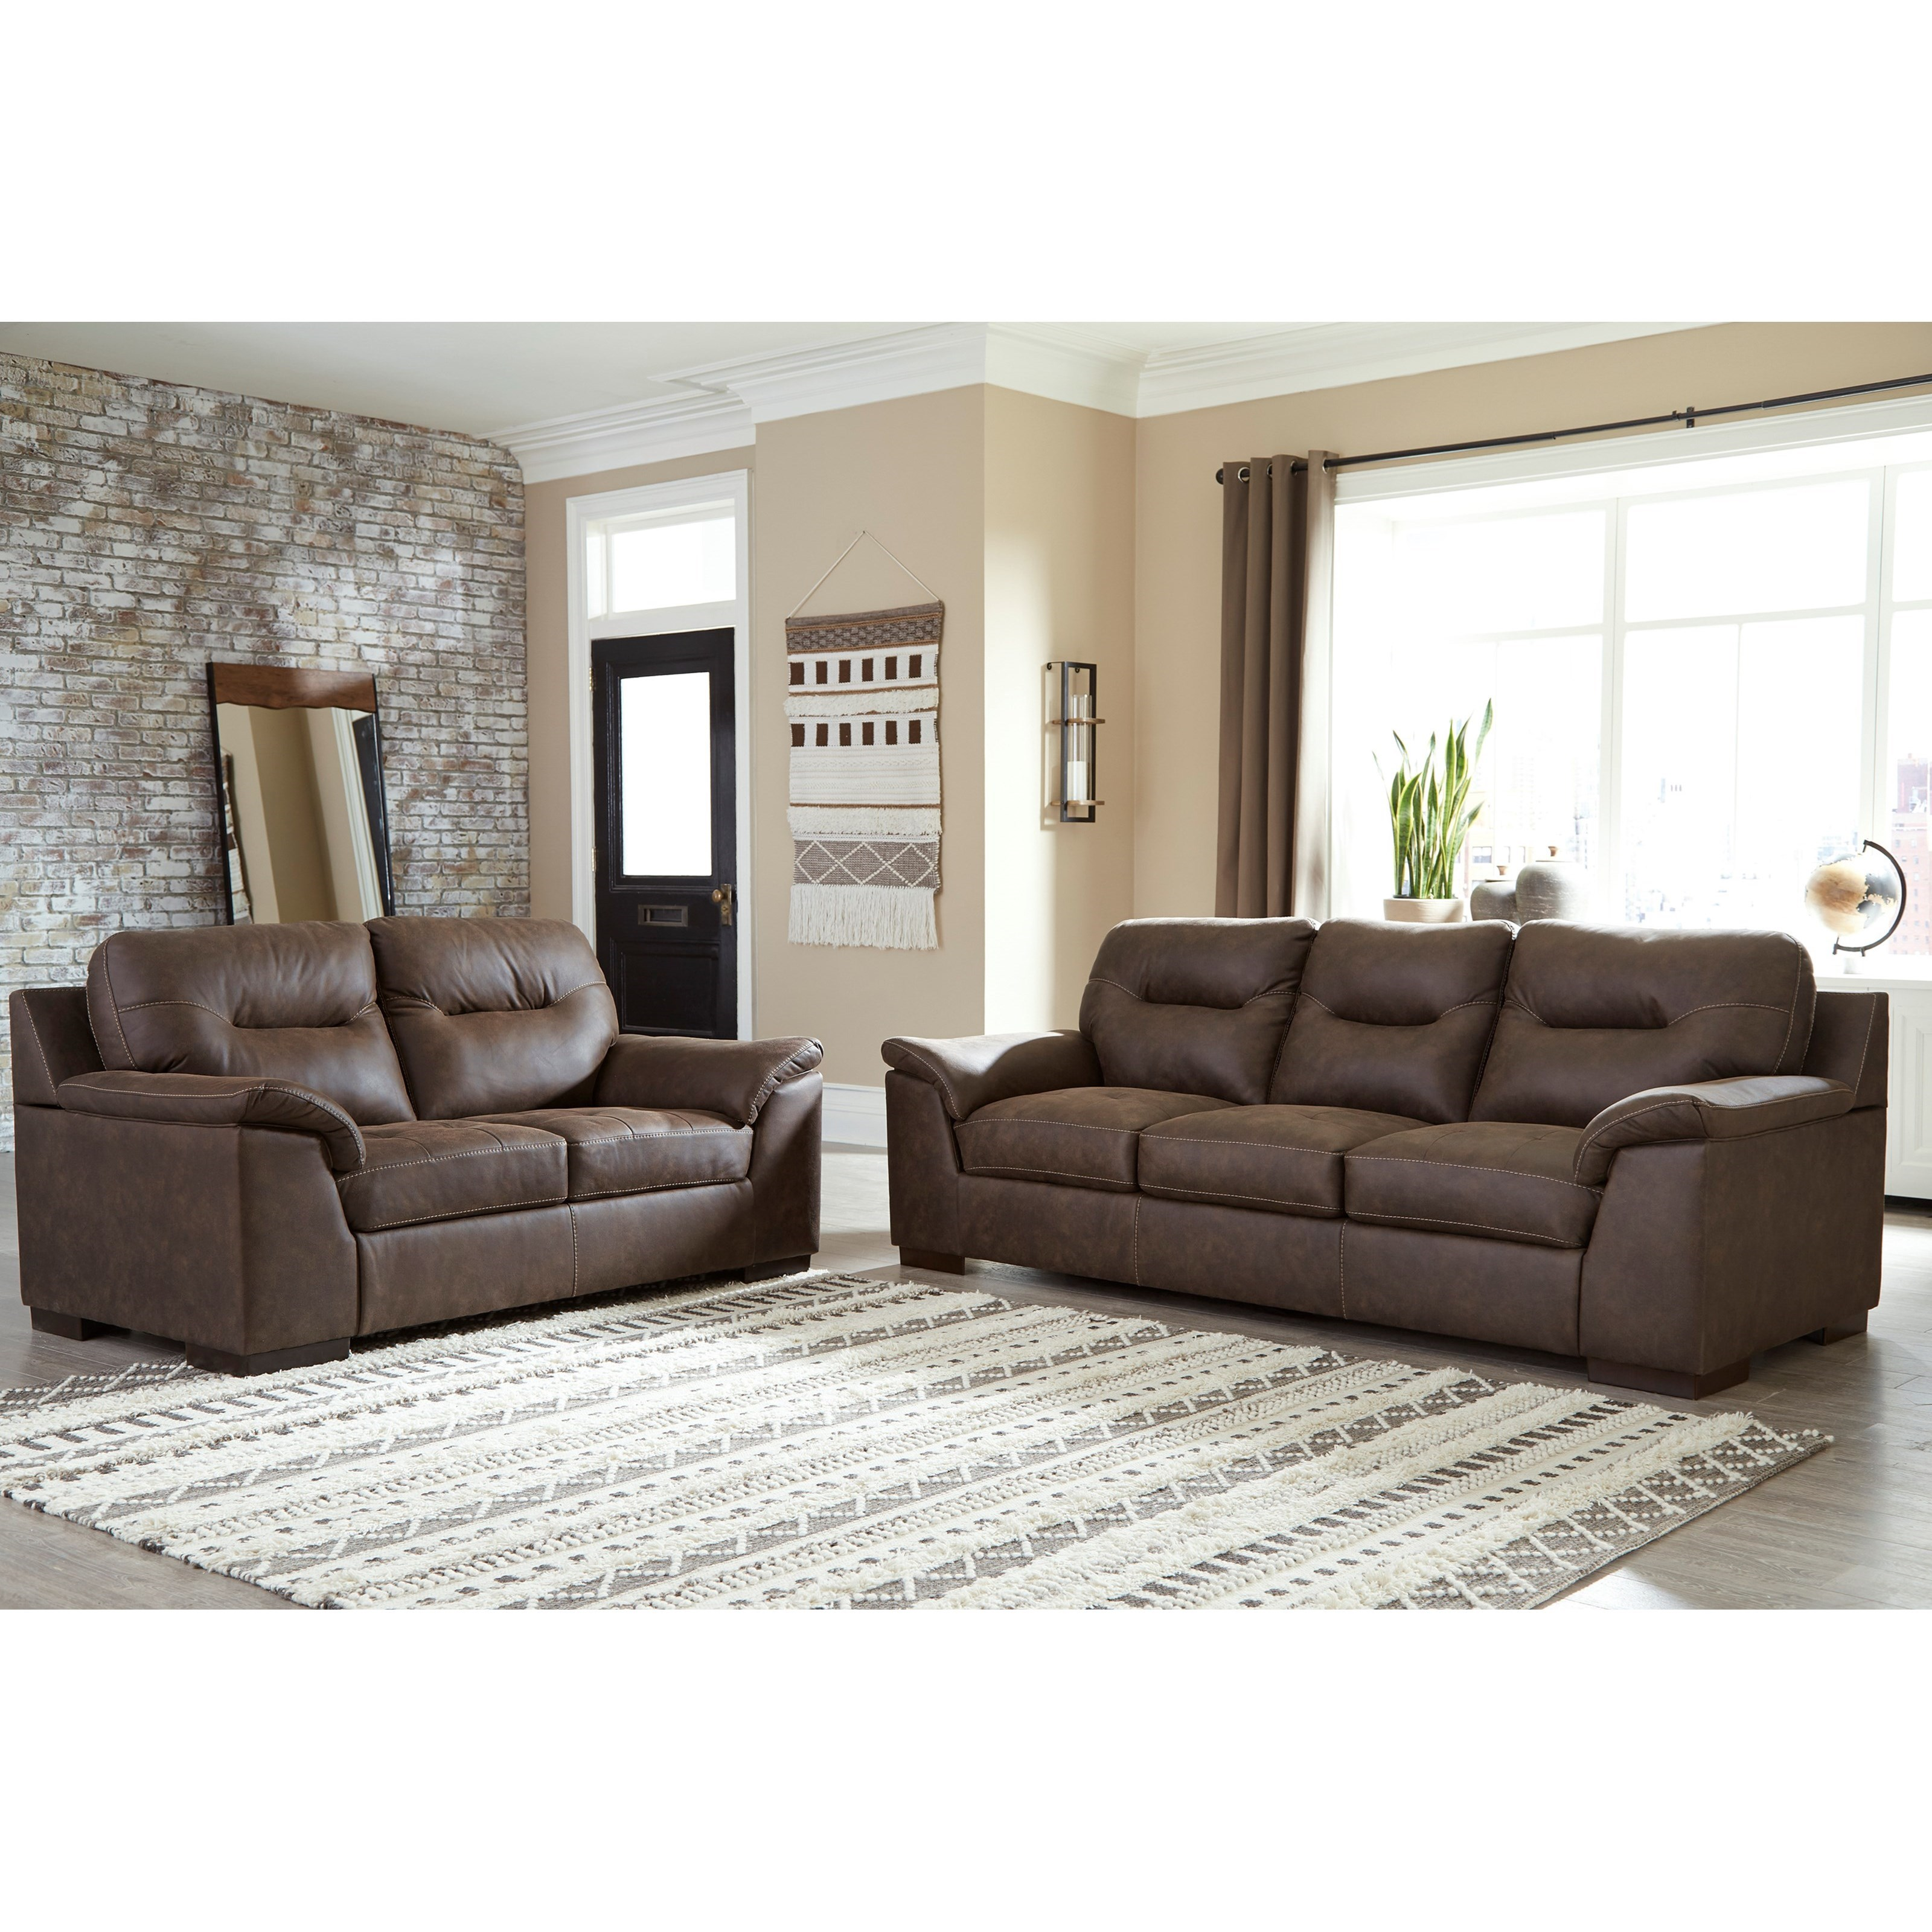 Maderla Living Room Group by Signature Design by Ashley at Lapeer Furniture & Mattress Center